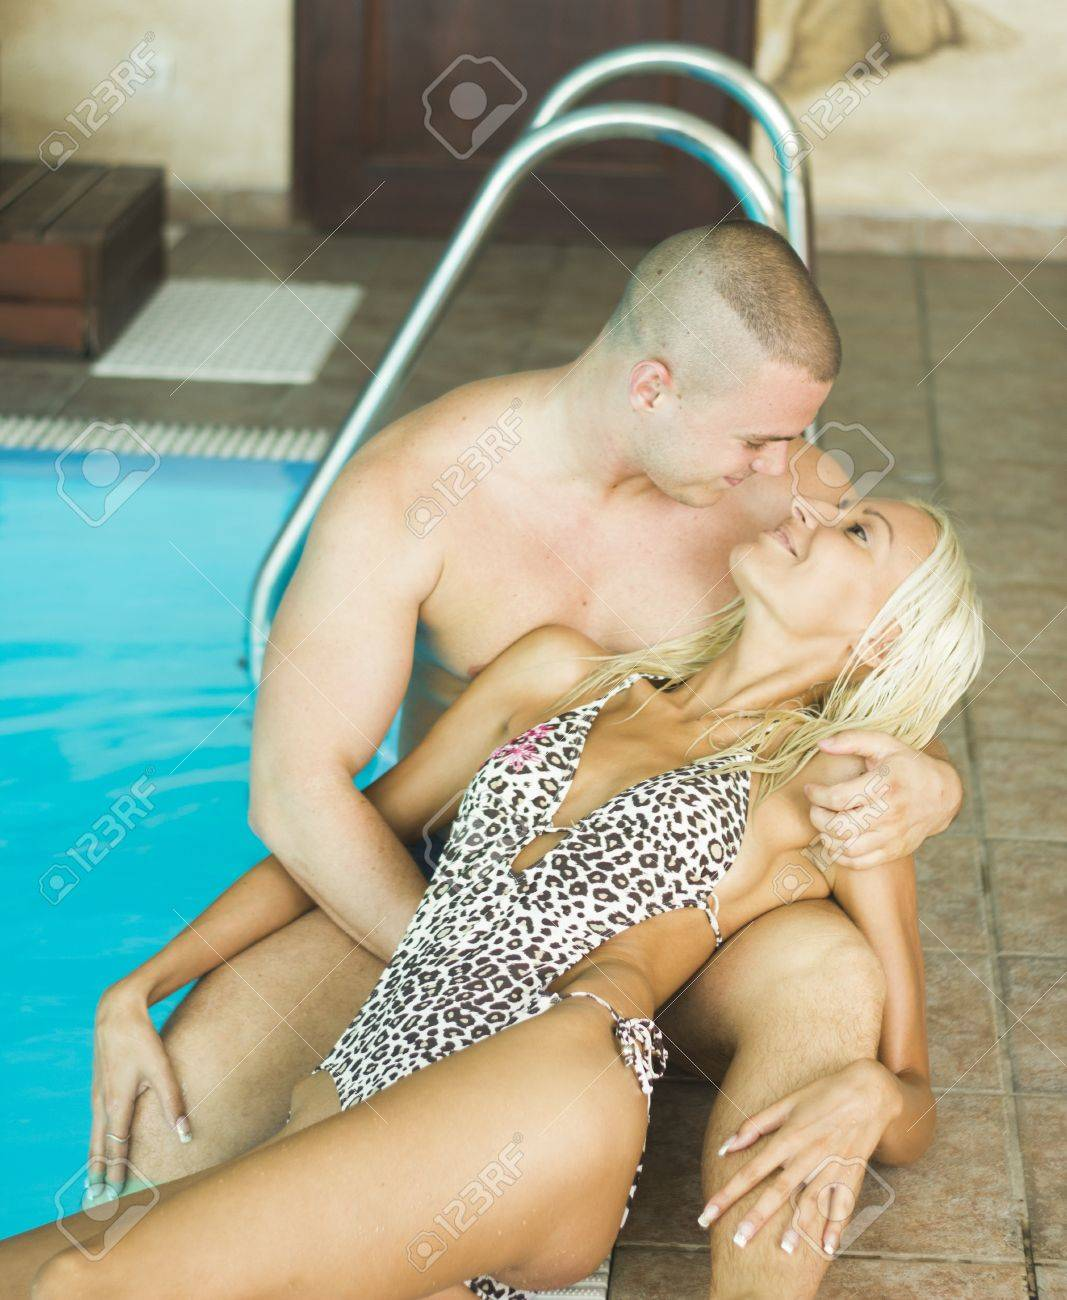 Sexy passionate heterosexual couple by a pool Stock Photo - 14531092